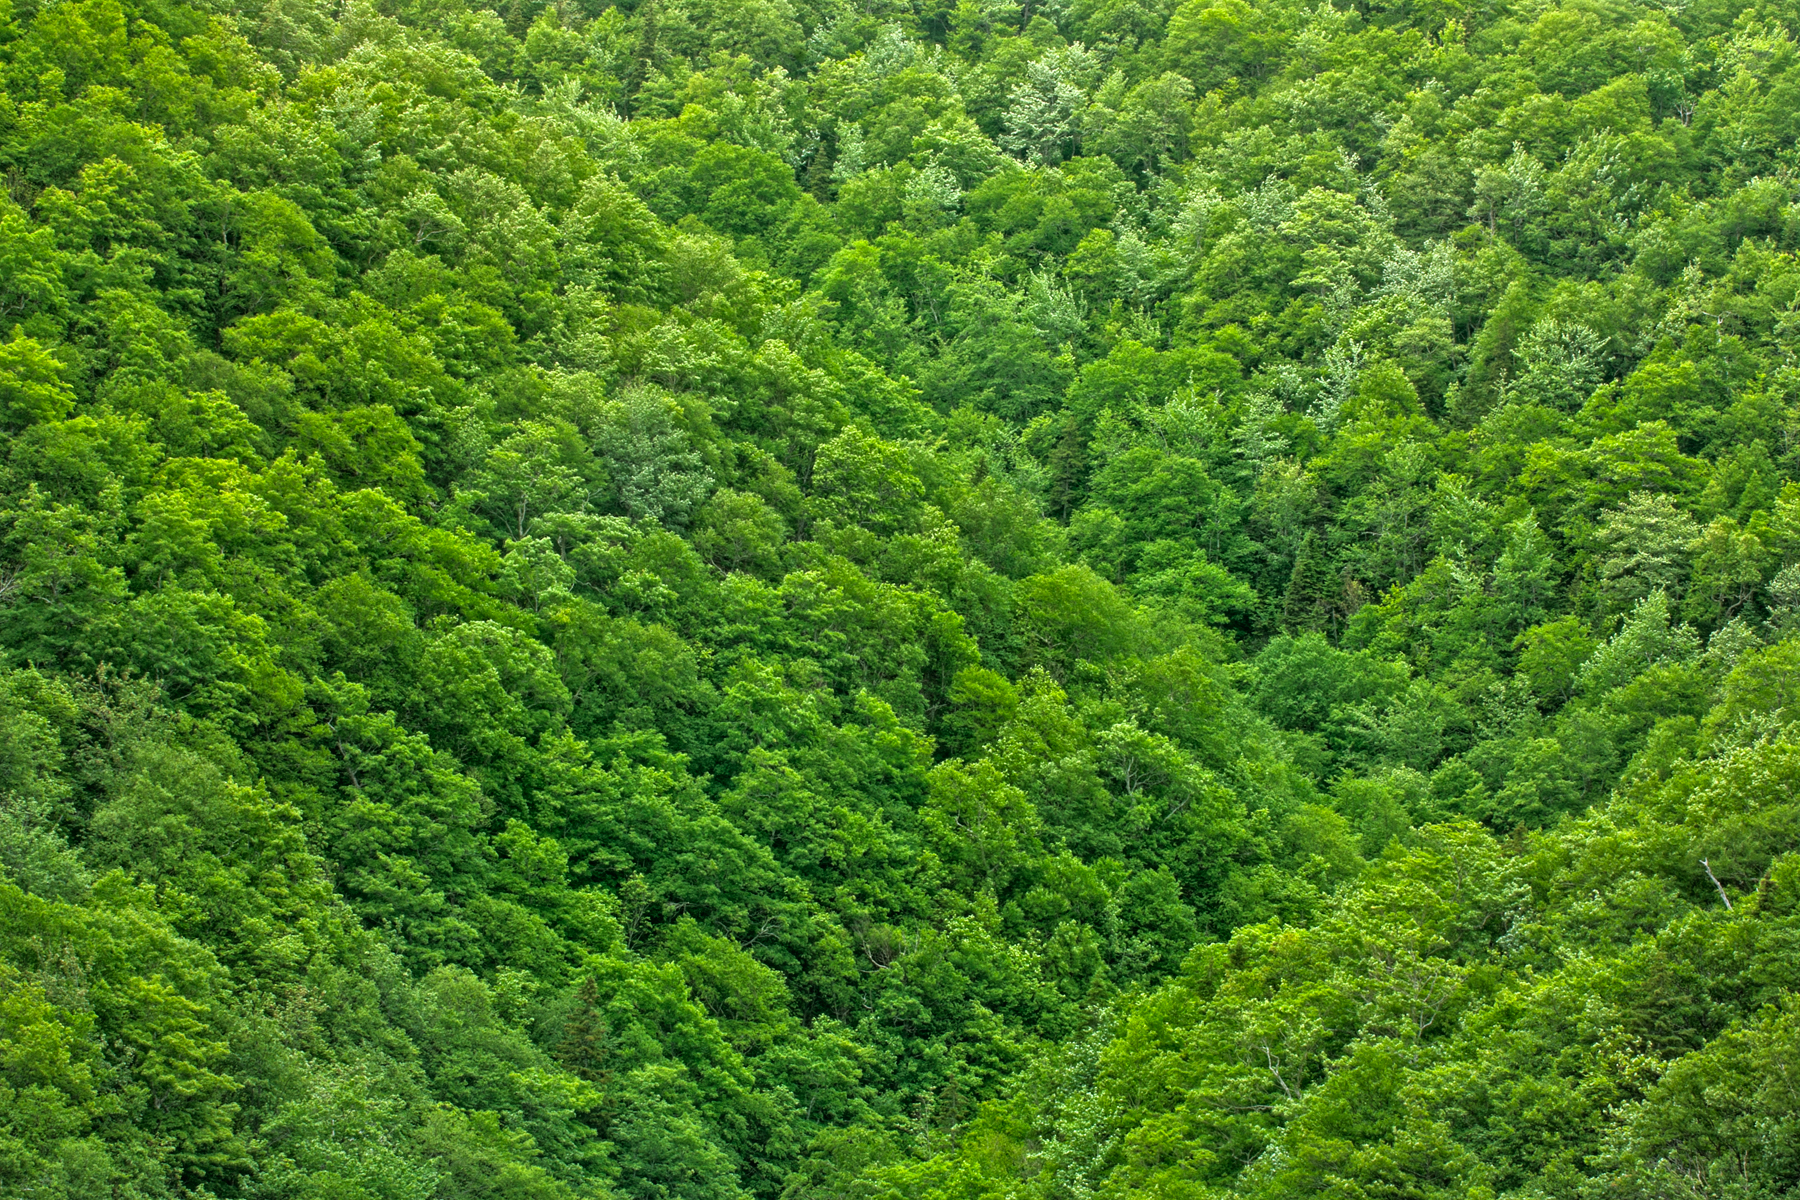 Green Foliage Texture - HDR, Angle, Somadjinn, Photograph, Picture, HQ Photo